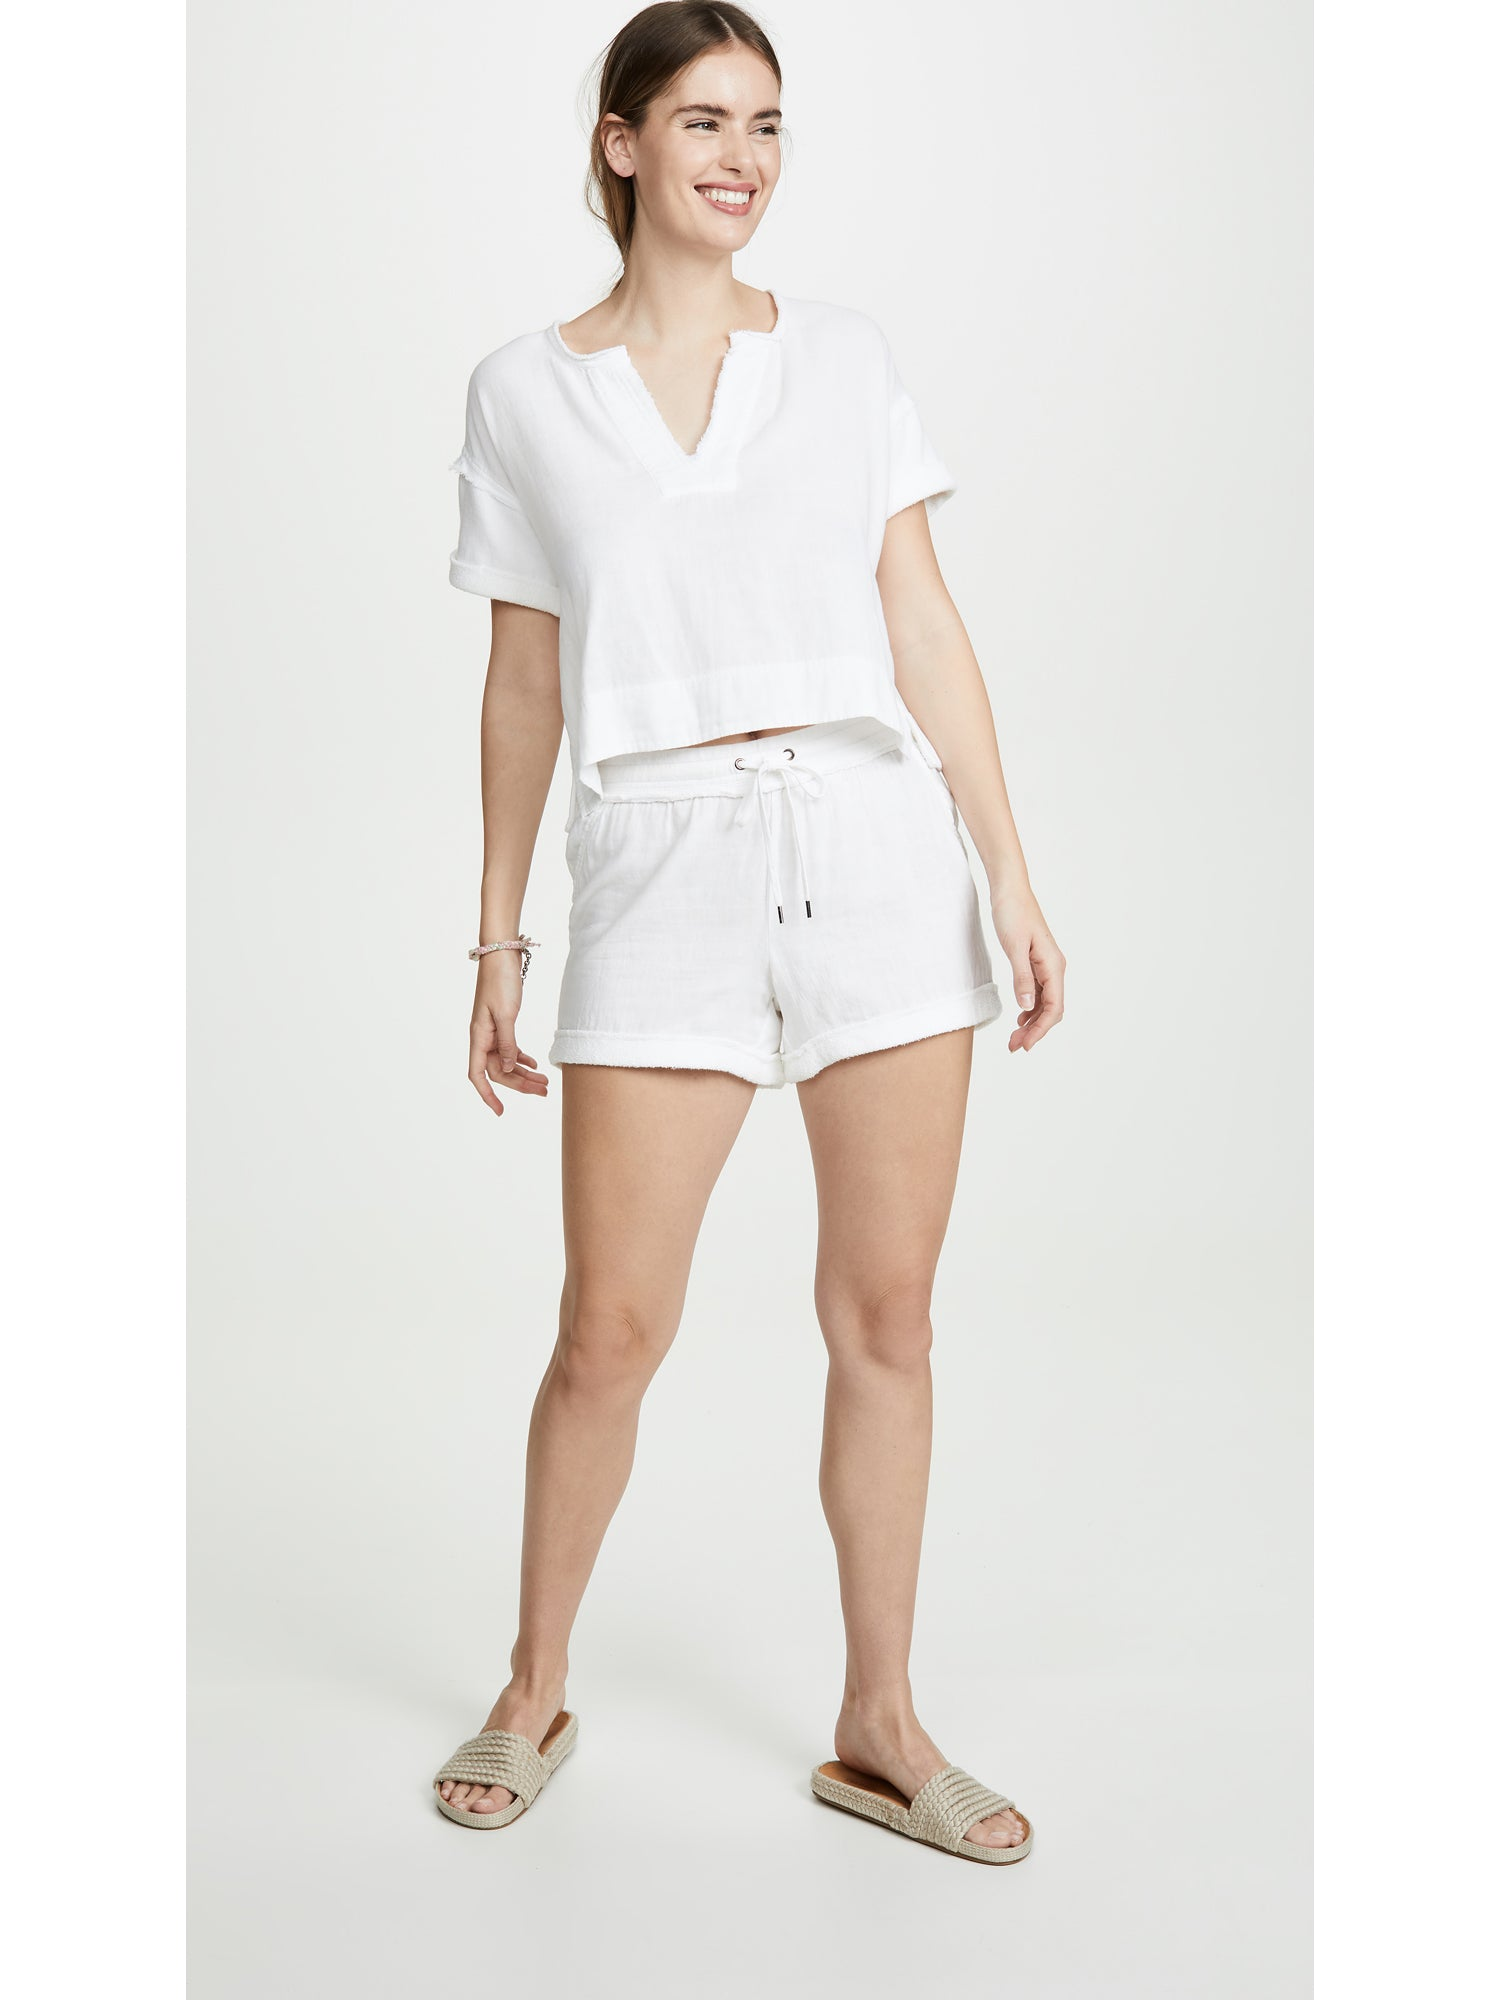 Splendid Abbot Mixed Media French Terry Shorts - White | TILDEN